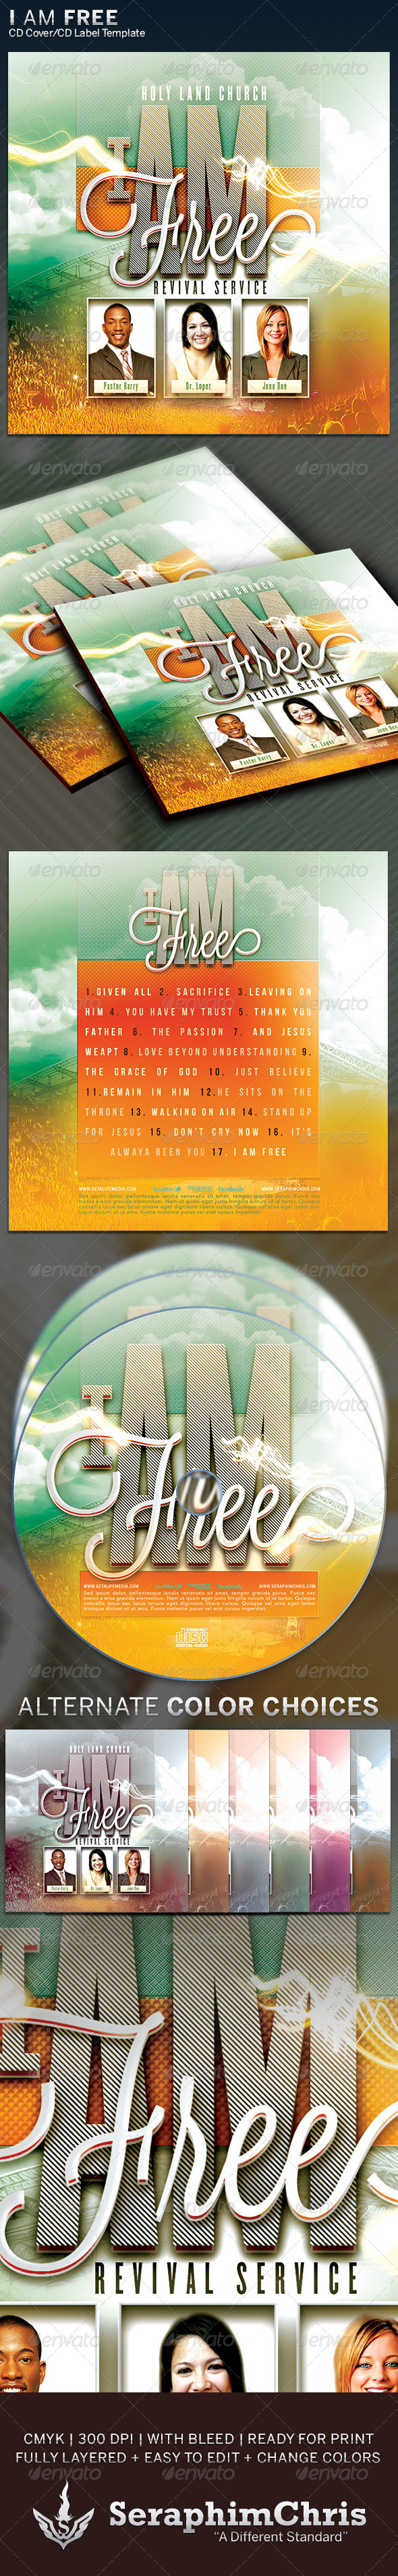 I Am Free: CD Cover Artwork Template - CD & DVD Artwork Print Templates